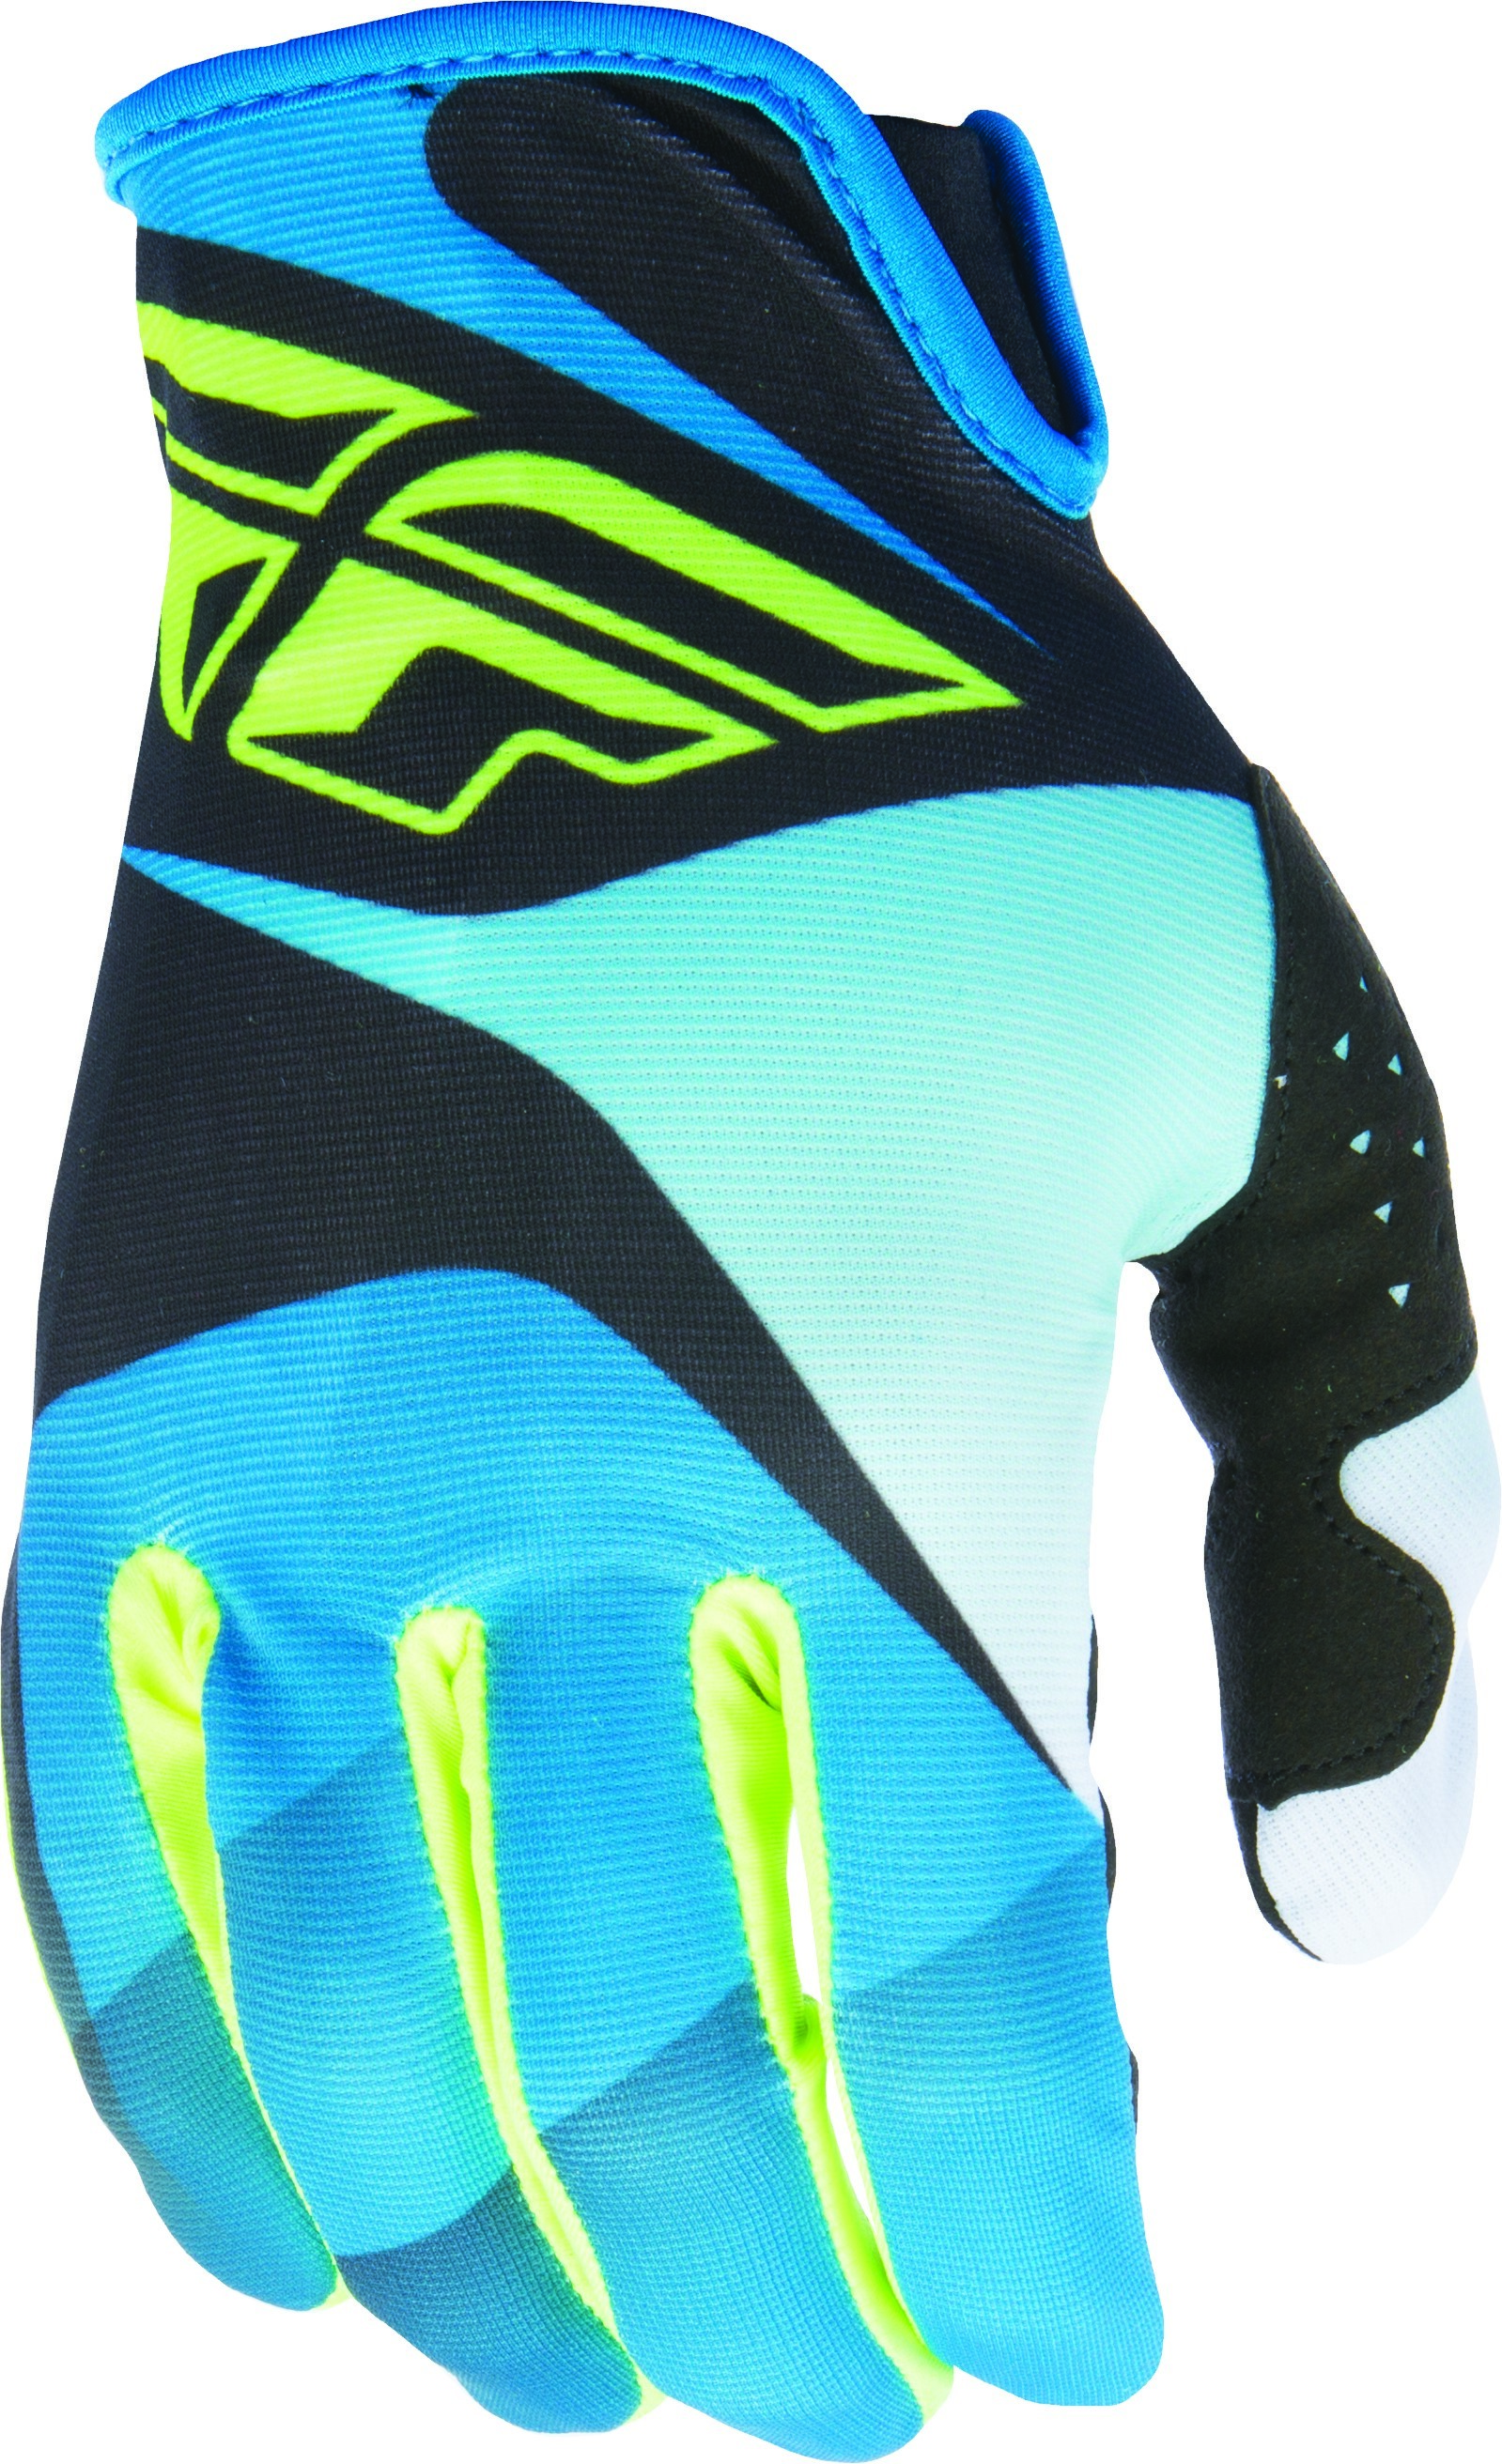 LITE GLOVE BLUE/BLACK/HI-VIS SZ 8 S (370-01108)